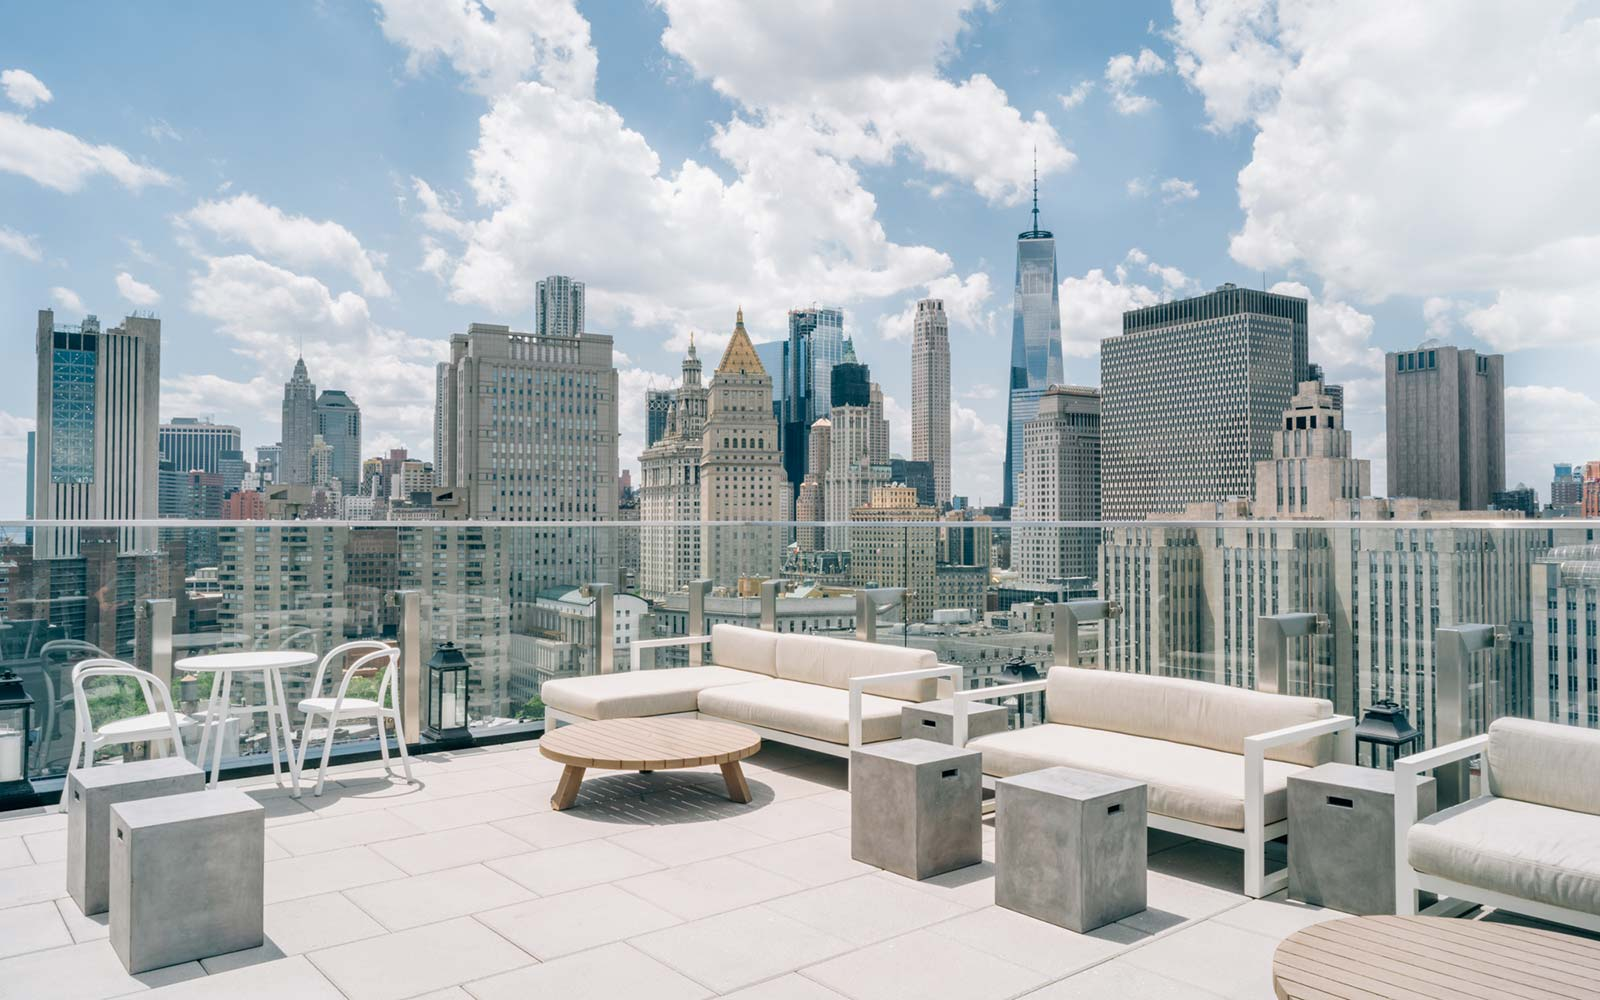 Hotel 50 Bowery The Crown Rooftop New York